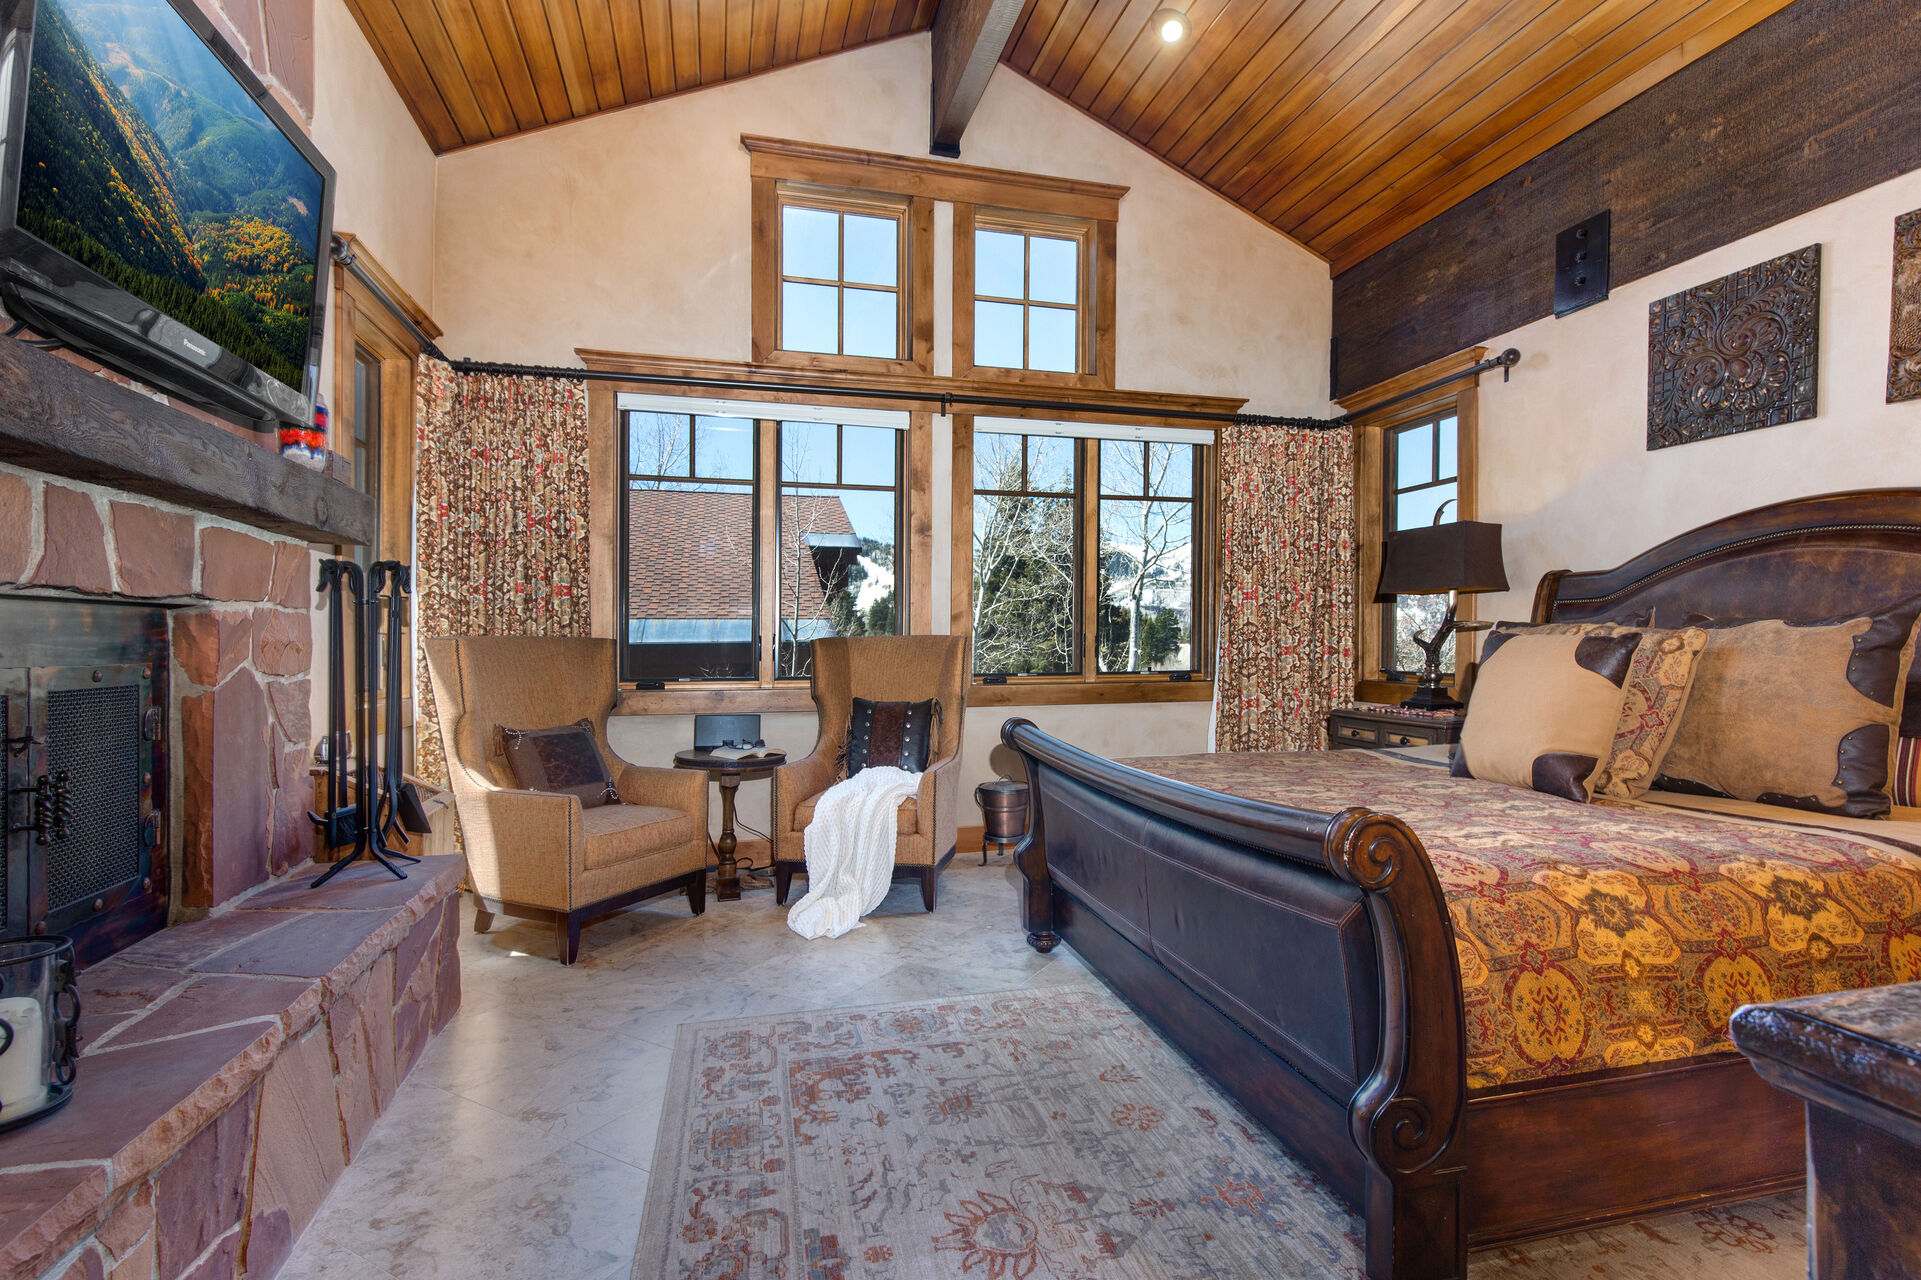 Grand Master Bedroom with a King Bed and a Fireplace With Clean Burning Fire Logs (Provided)